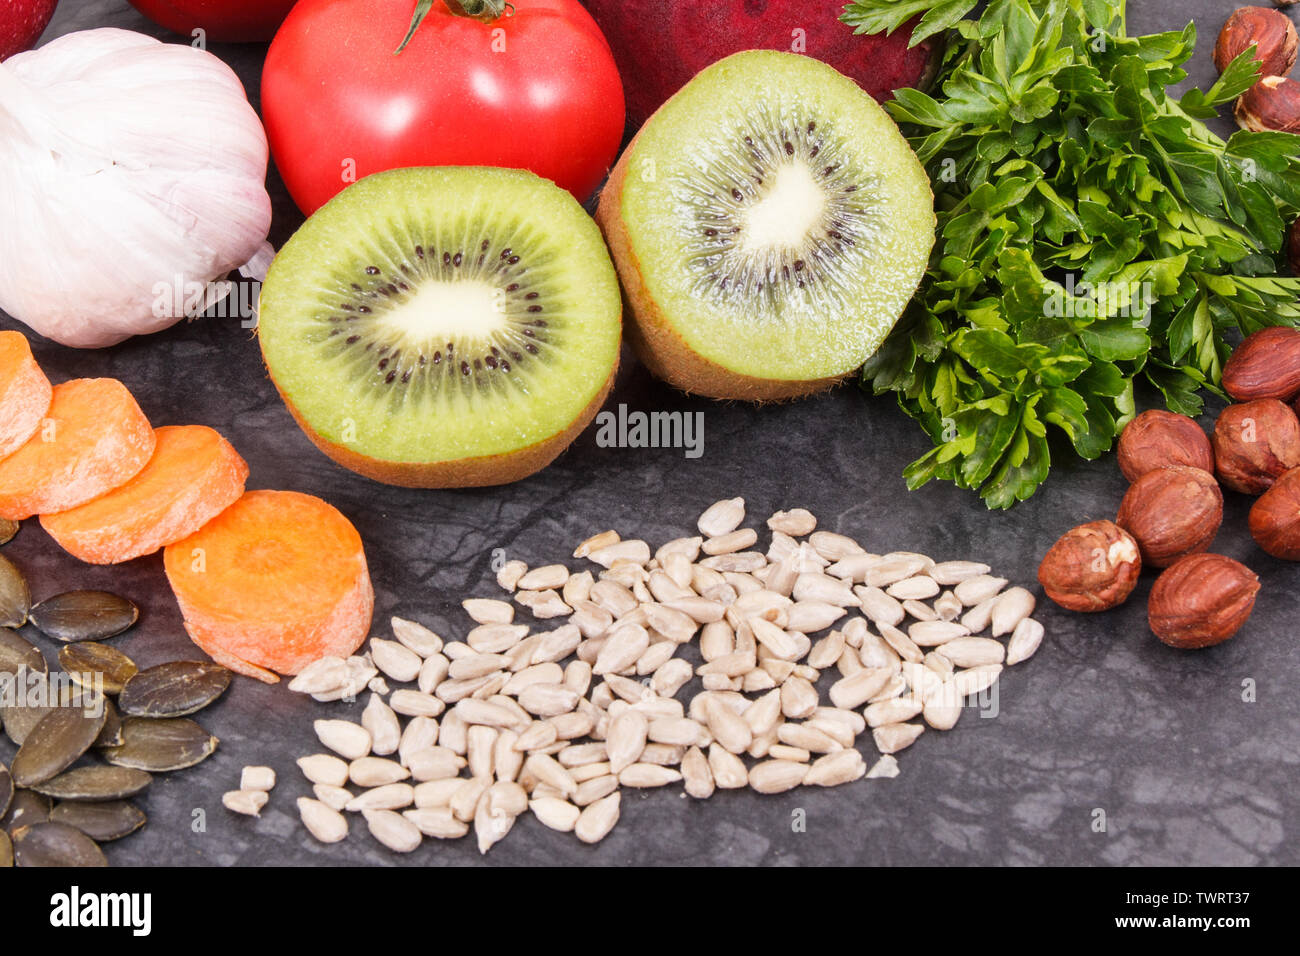 Healthy eating containing natural vitamins and minerals. Concept of best food for gout and kidneys health - Stock Image